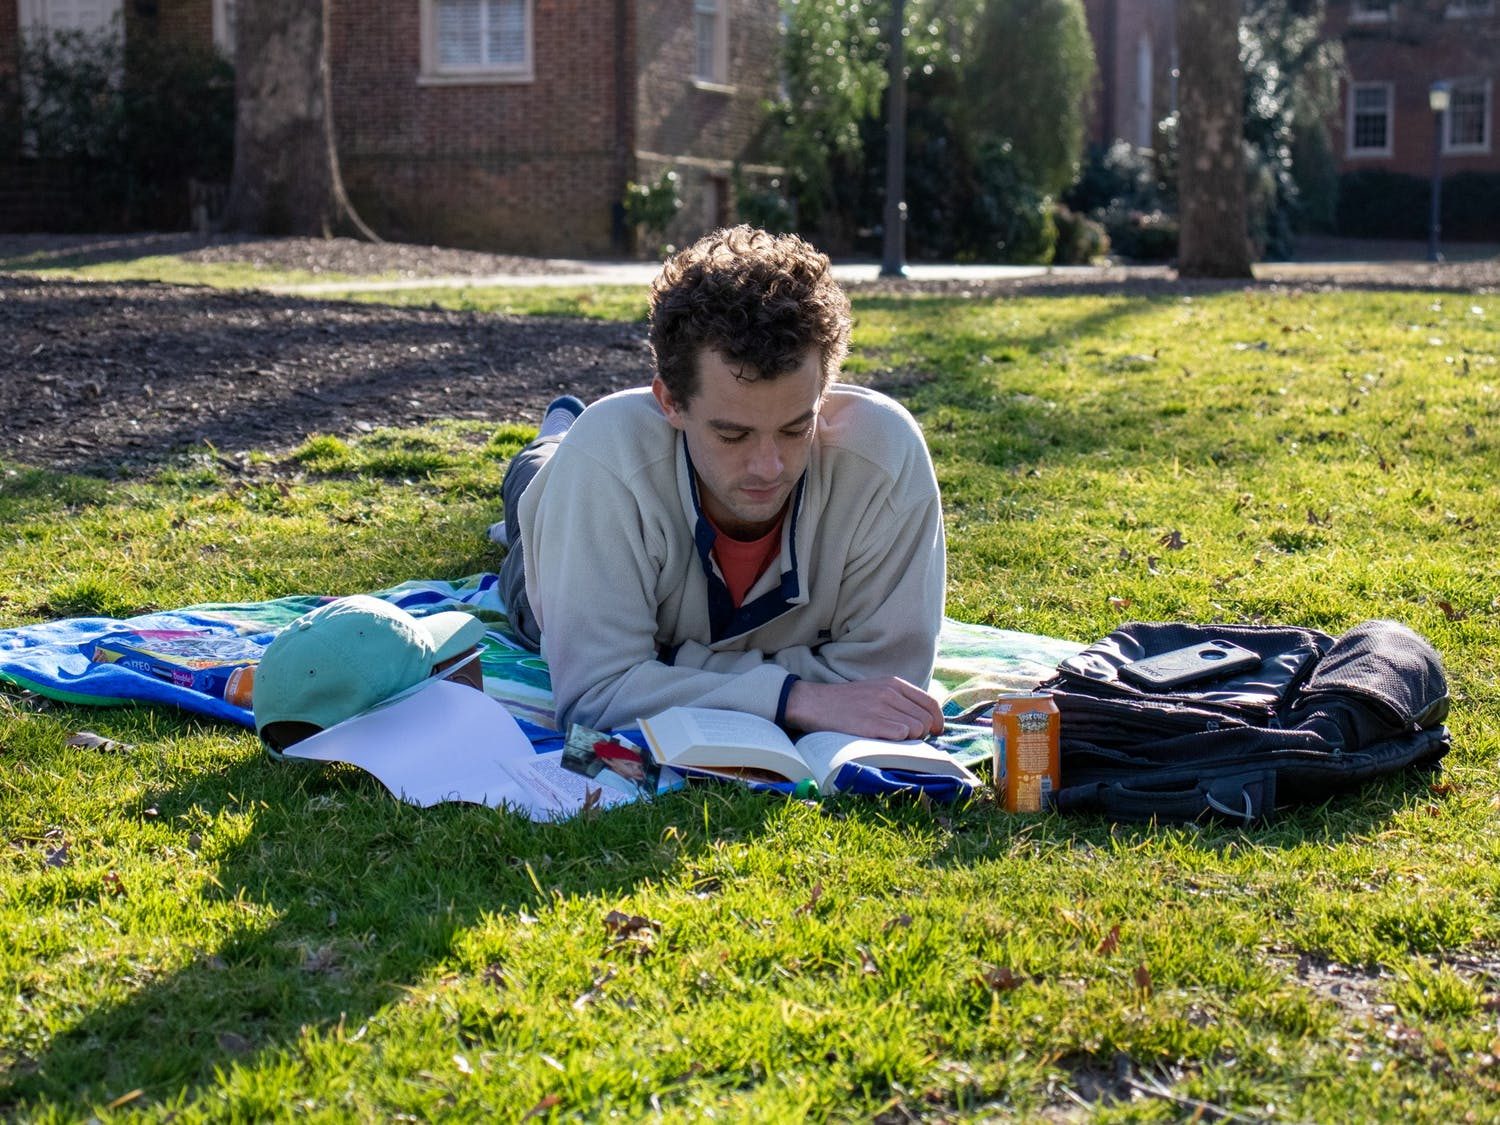 Ben Boatwright, second year at the UNC School of Law, reads a book at McCorkle Place in Chapel Hill on March 7, 2021.